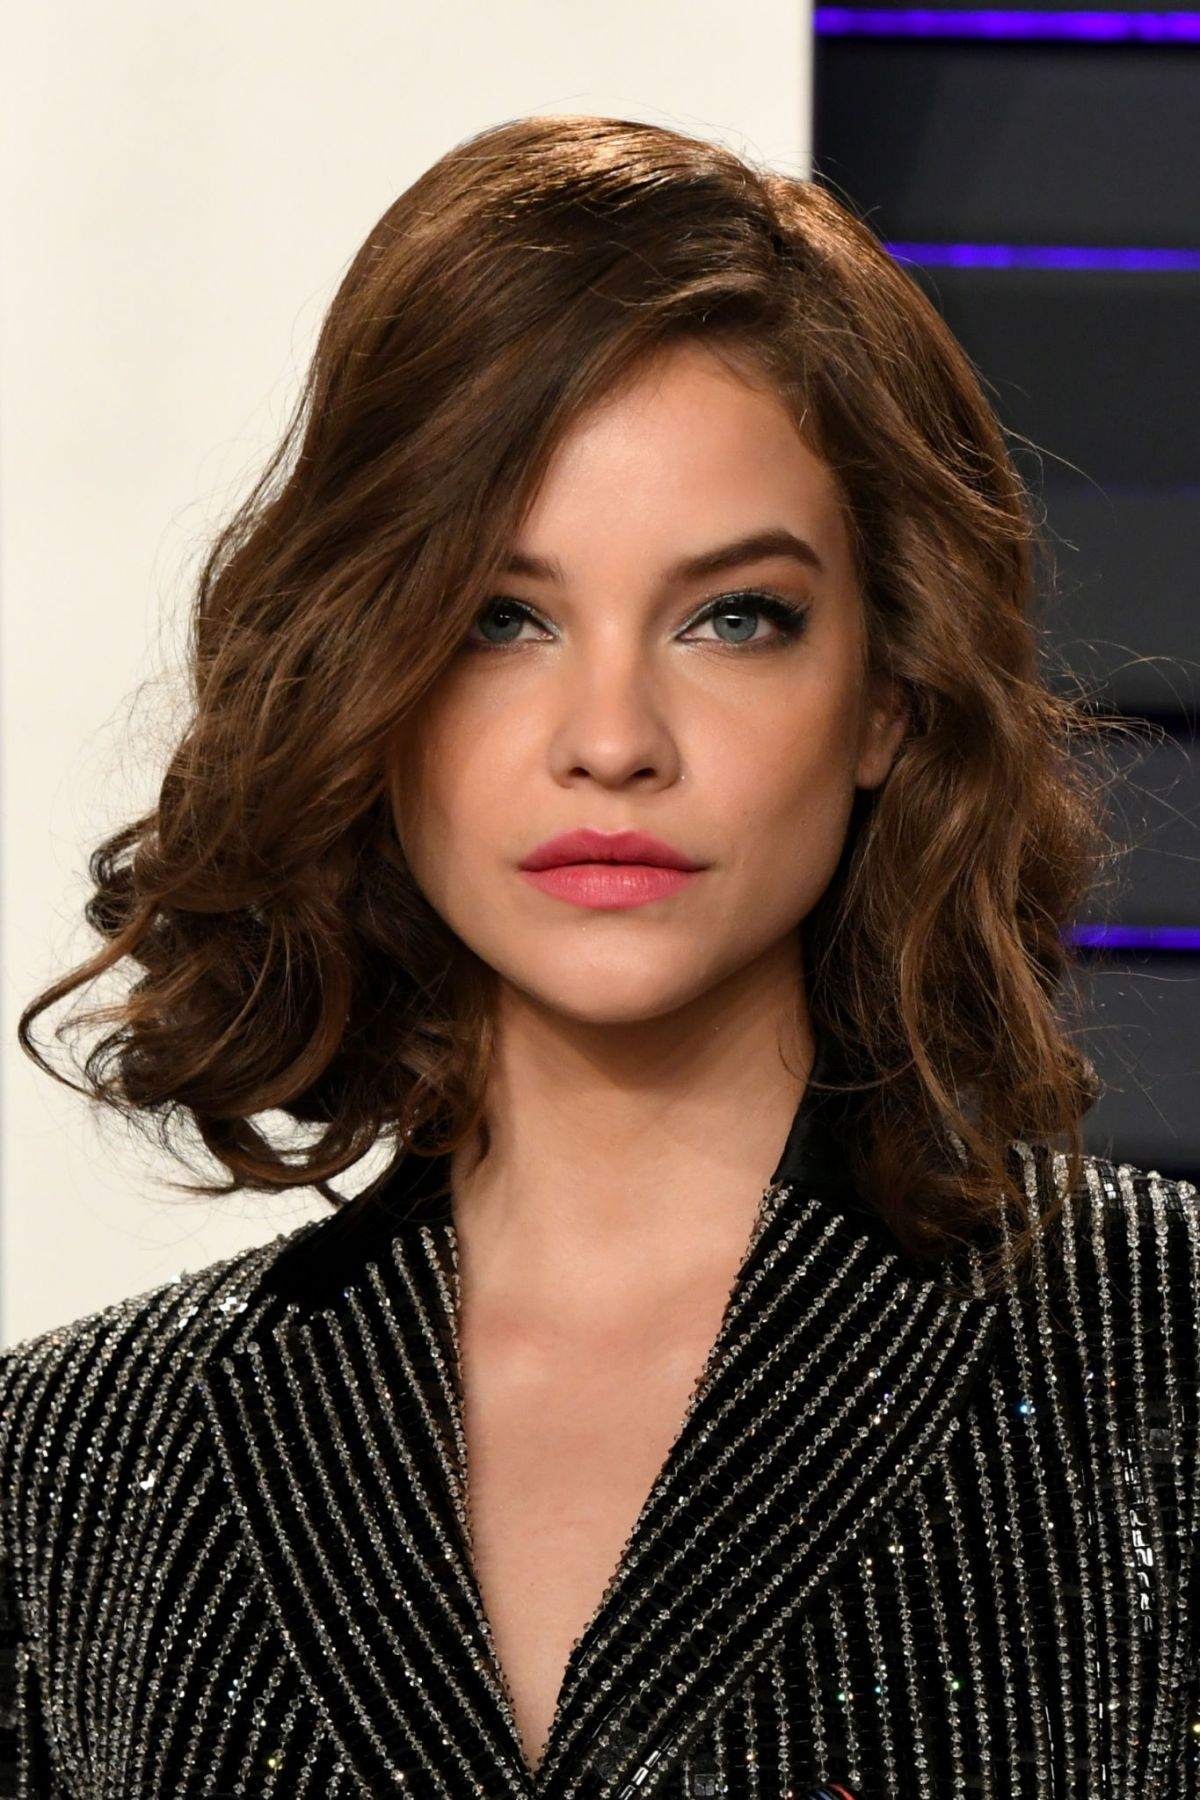 Barbara Palvin At Vanity Fair Oscar Party In Beverly Hills 02 24 2019 Hawtcelebs